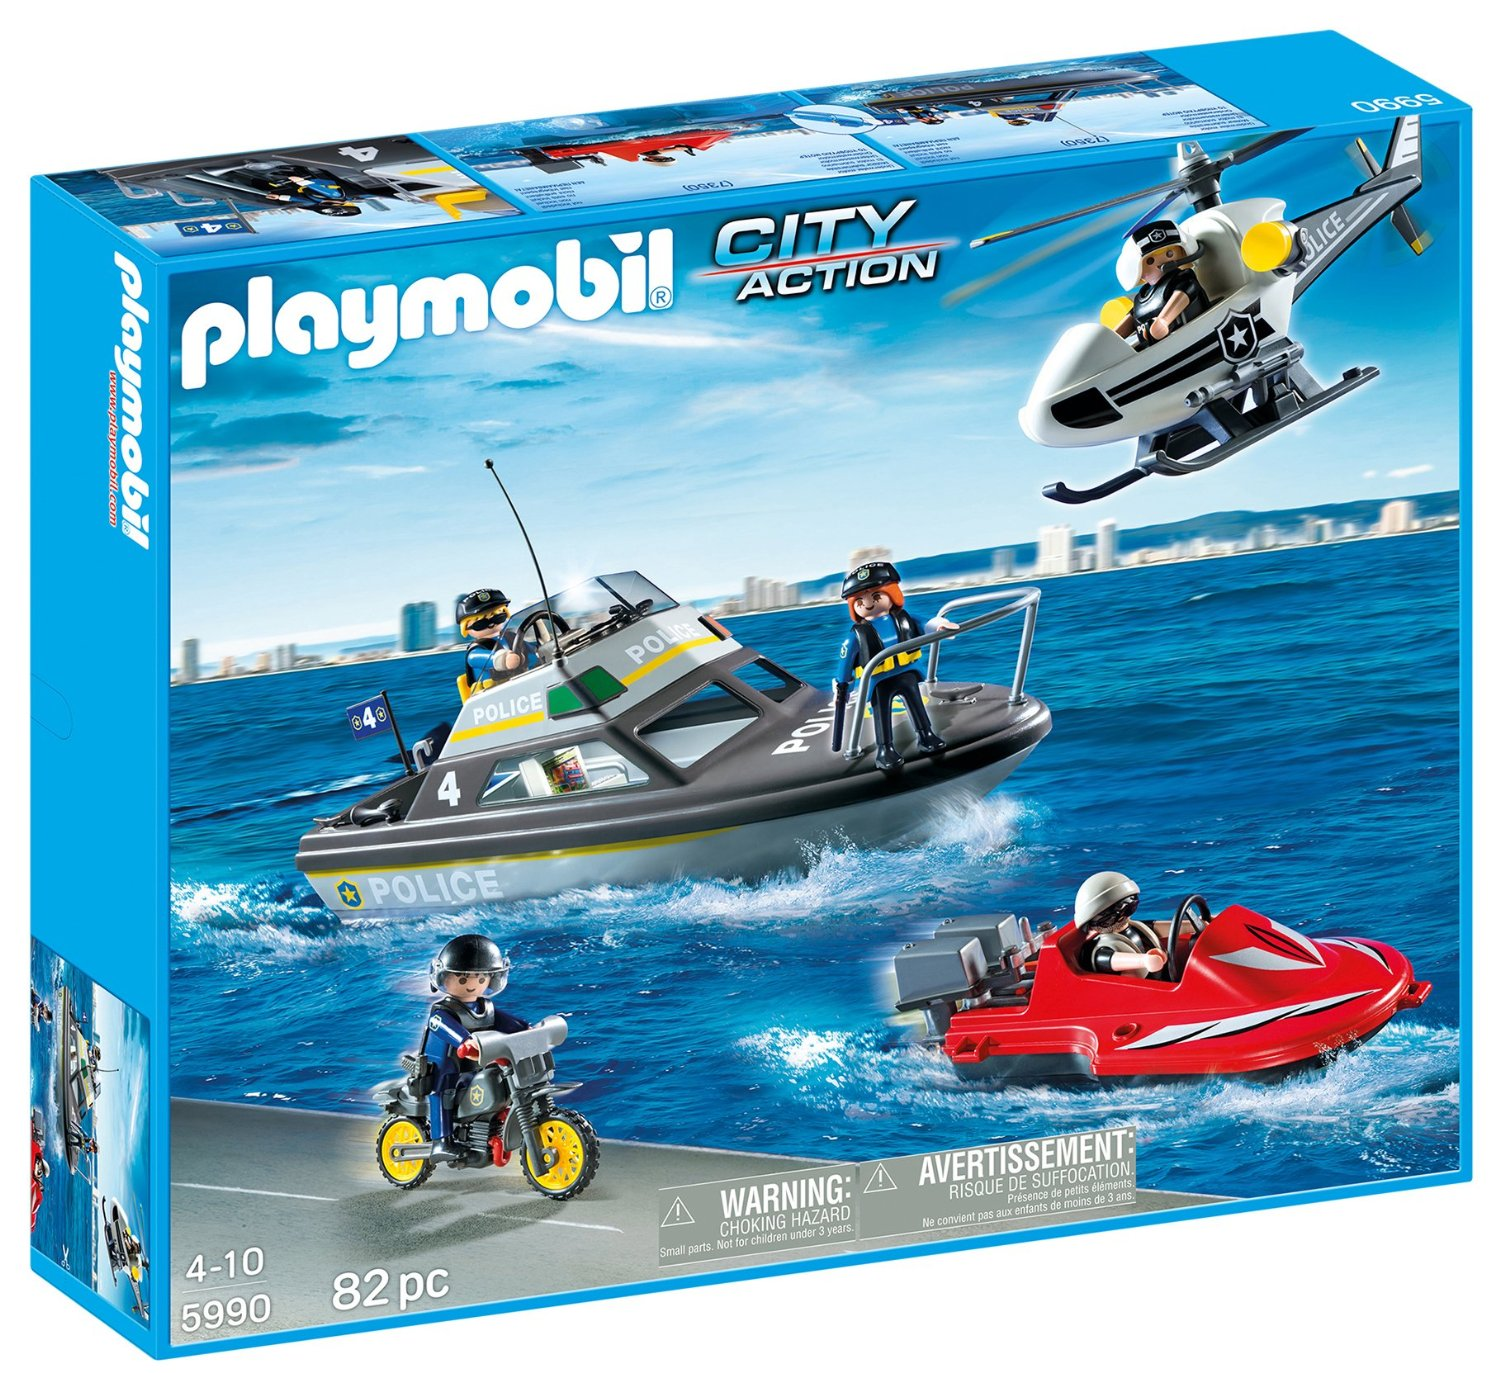 Playmobil action city